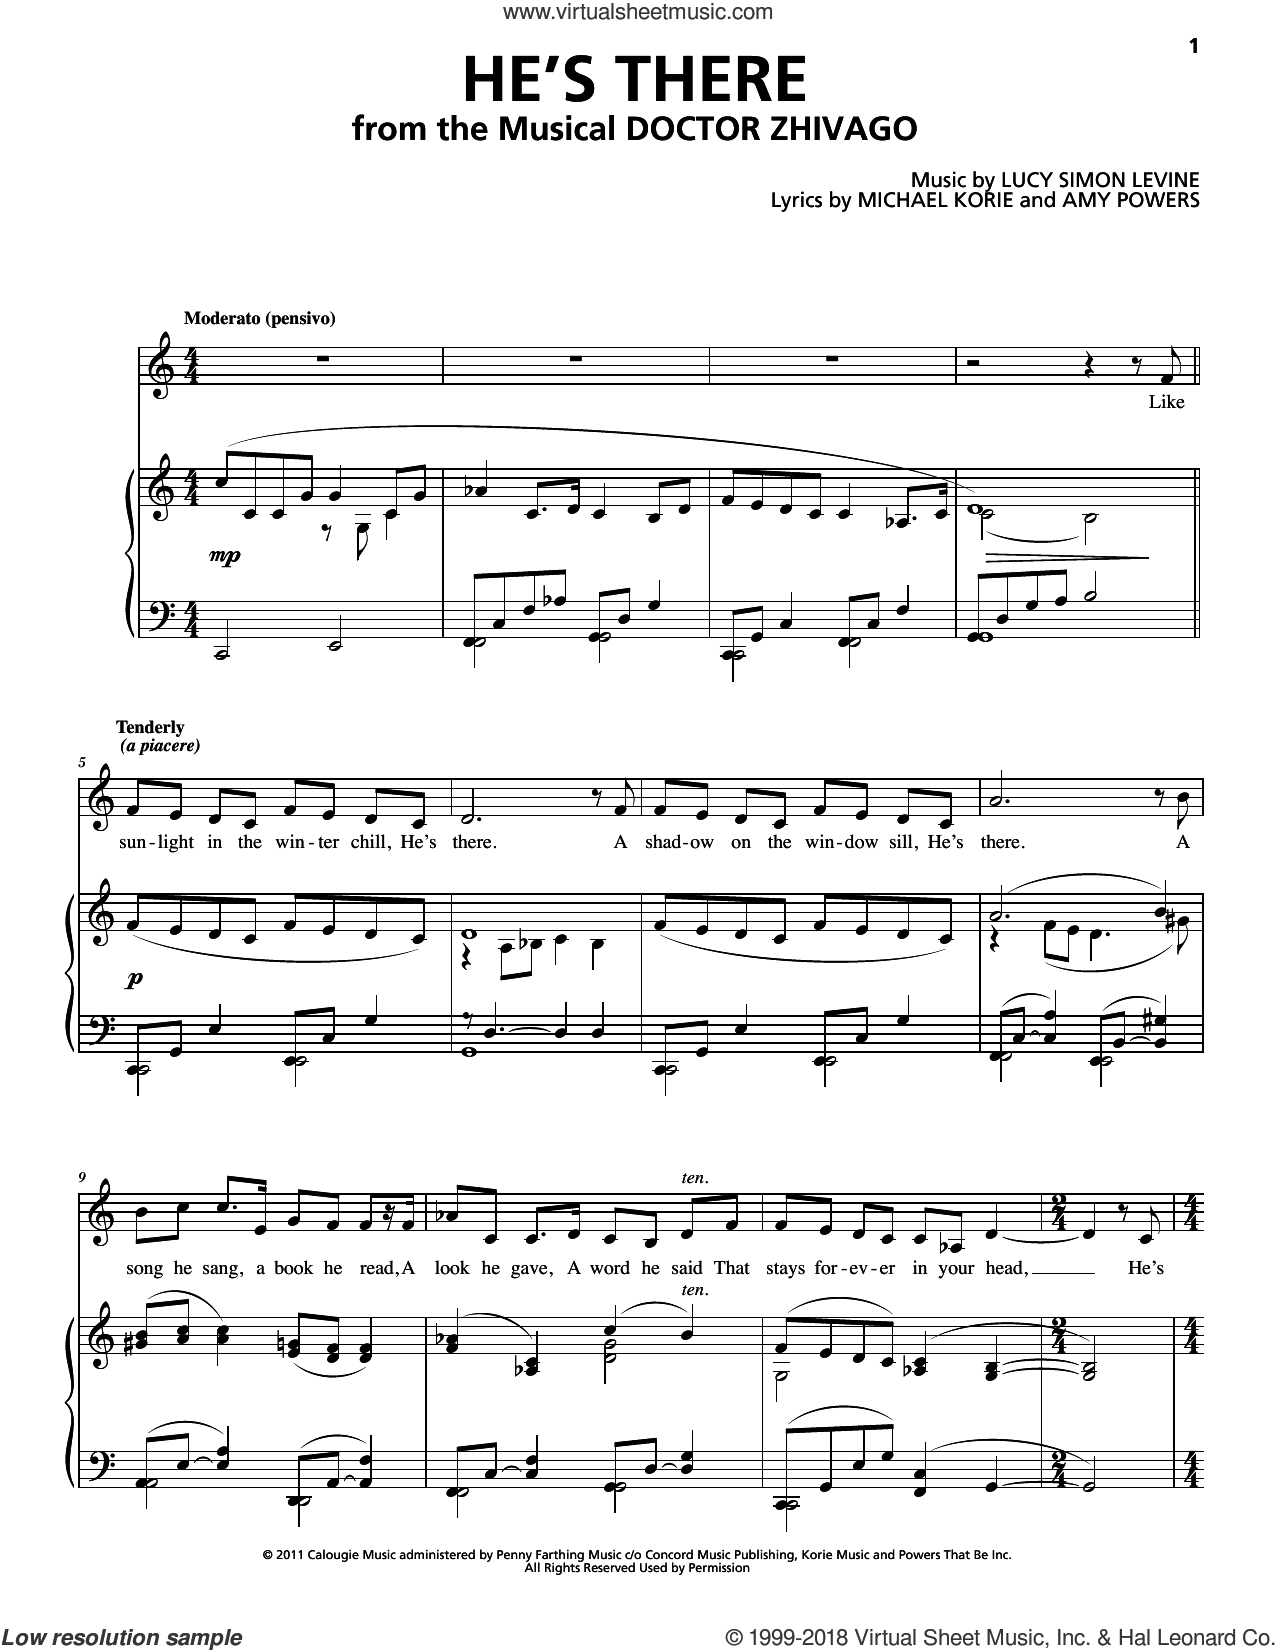 He's There sheet music for voice and piano by Michael Korie, Amy Powers, Lucy Simon, Lucy Simon Levine, Lucy Simon Levine, Michael Korie & Amy Powers and Lucy Simon, Michael Korie & Amy Powers, intermediate skill level